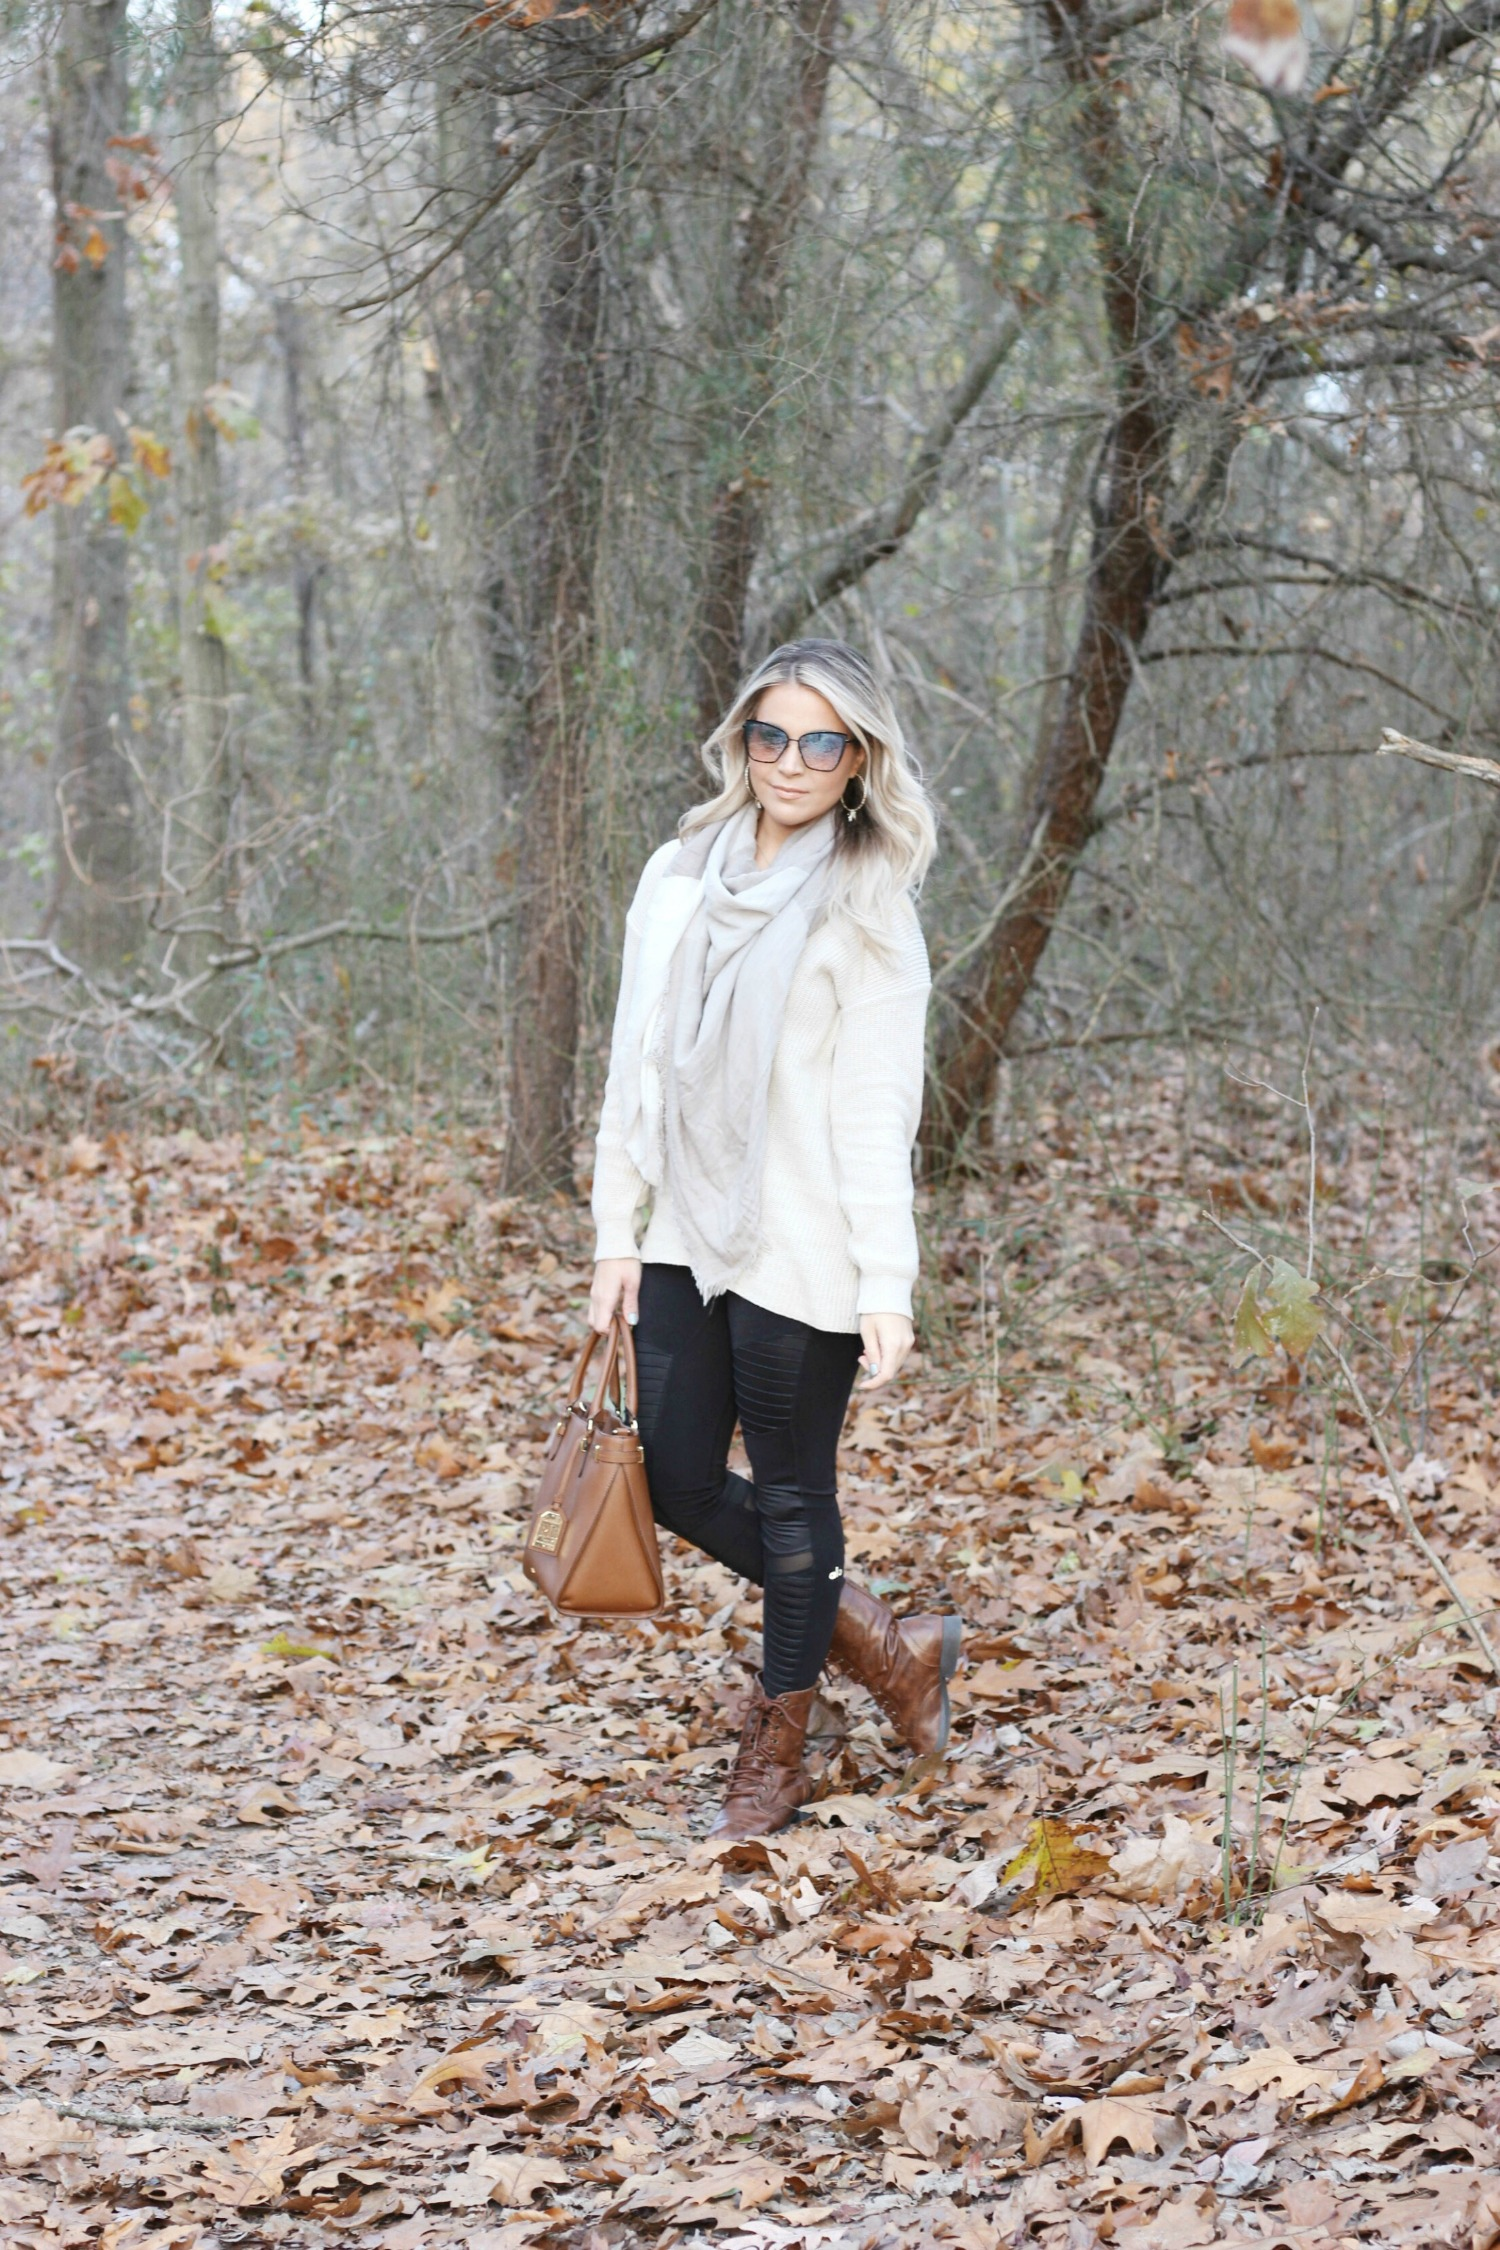 Oatmeal Cream Beige Tunic Sweater with Black Moto Leggings and Beige Checkered Scarf | Sweaters For Leggings | Philadelphia Style and Beauty Blogger